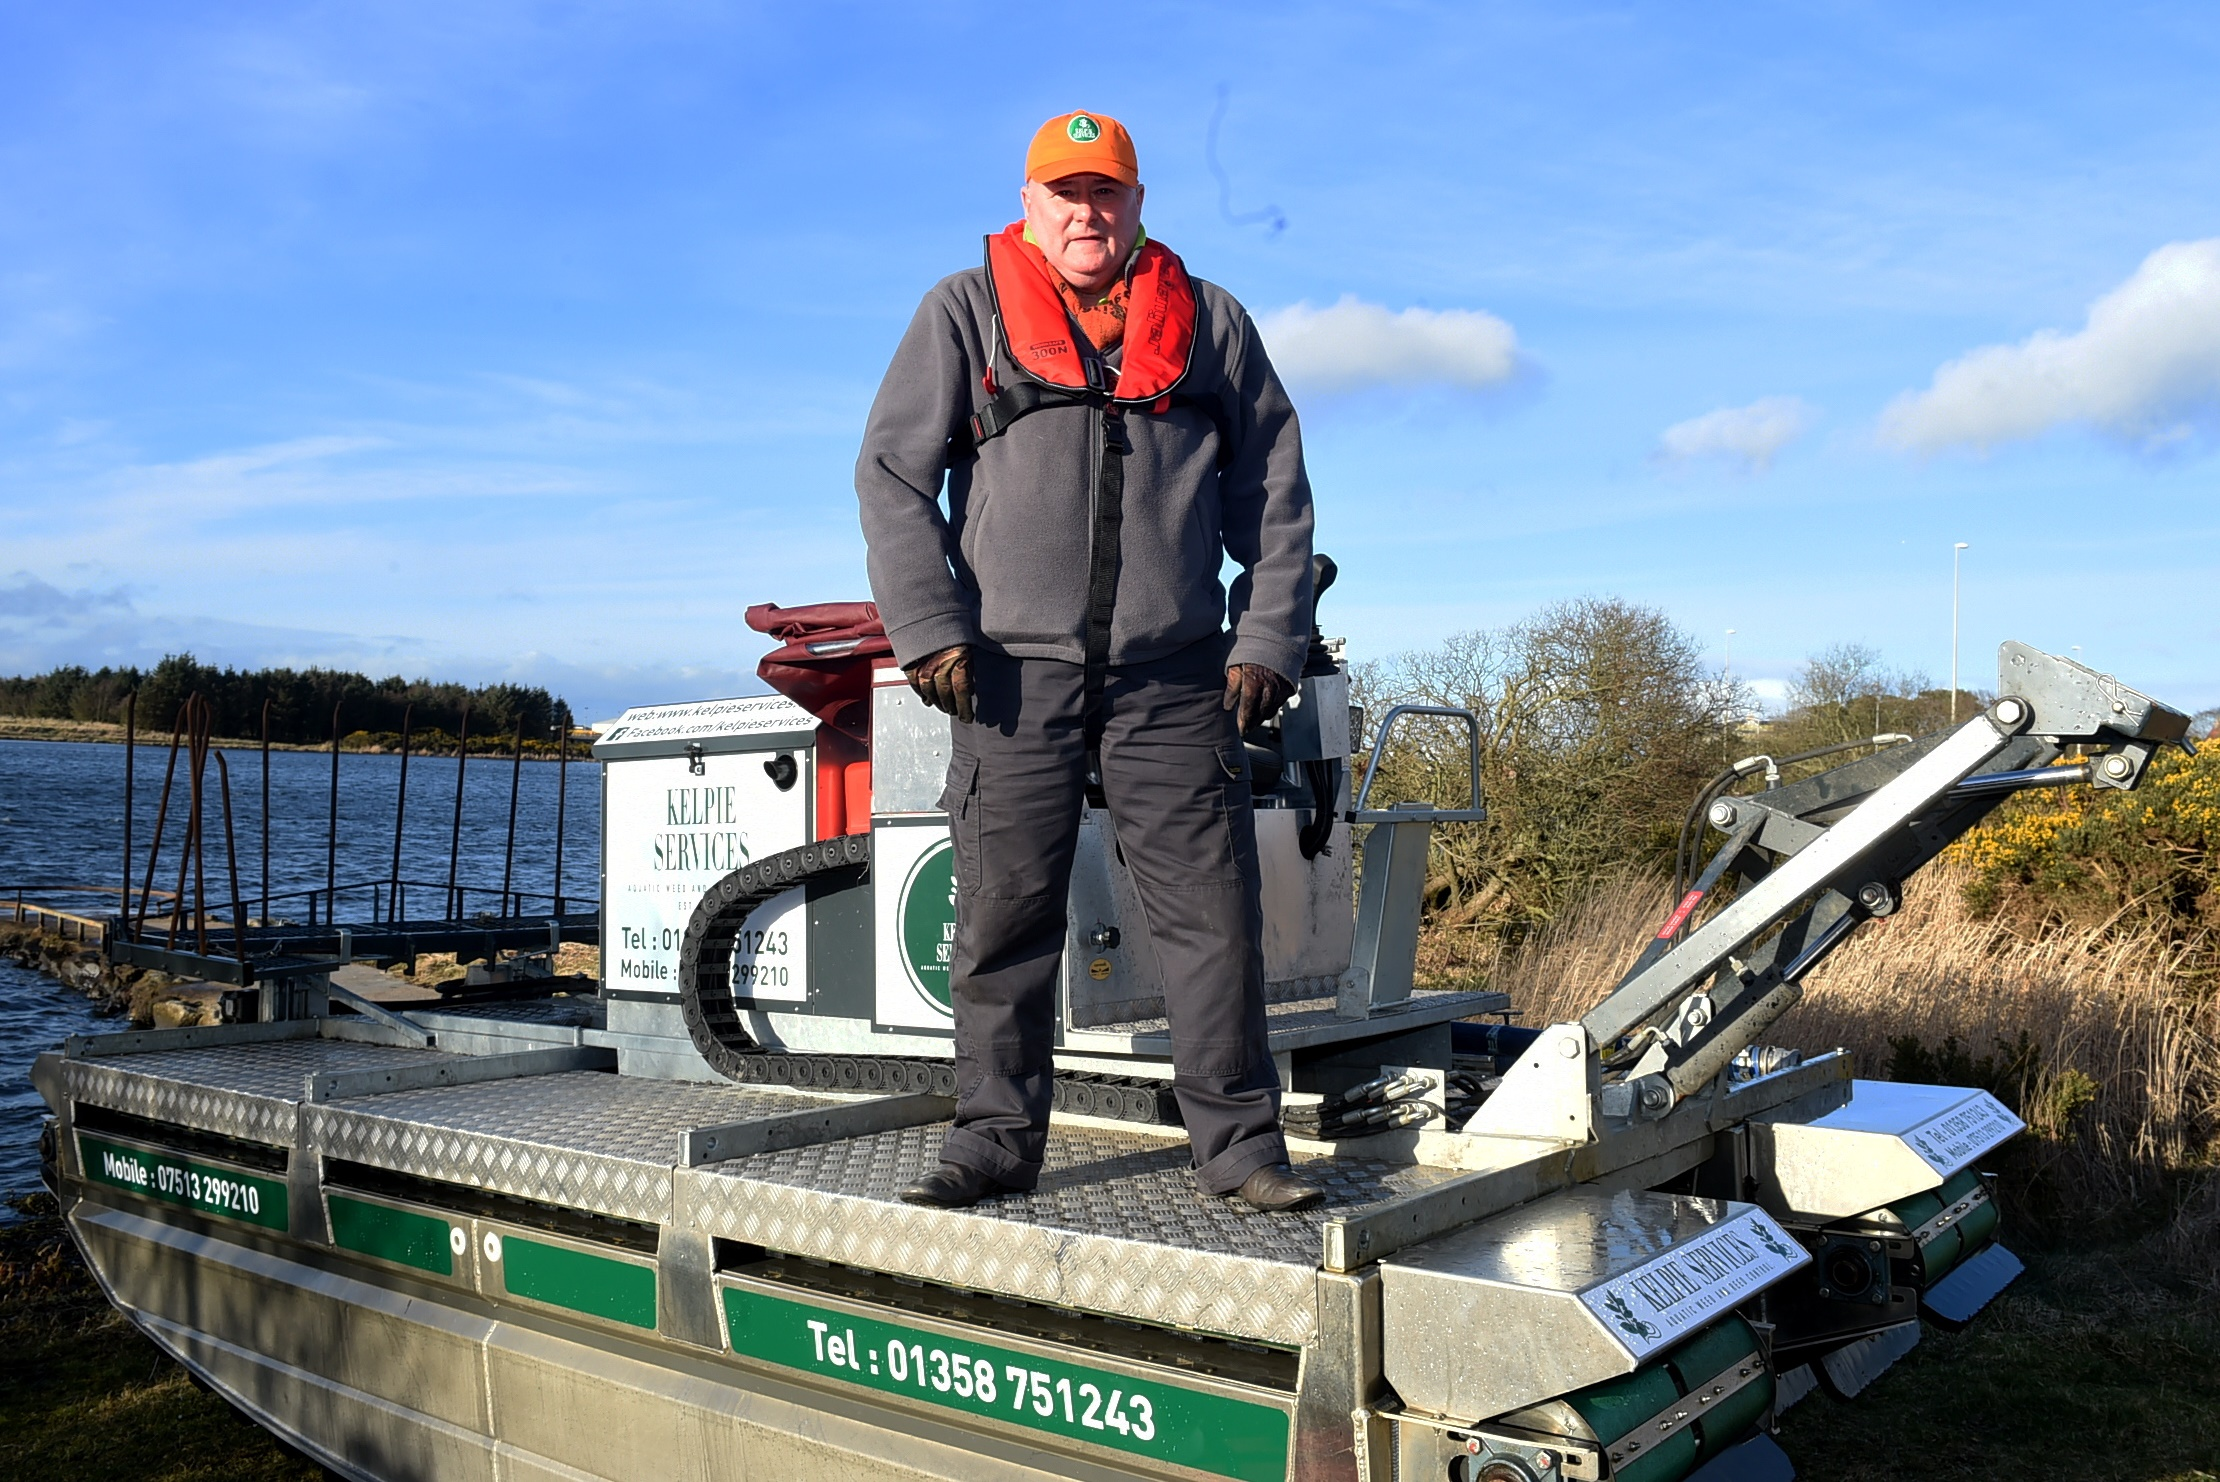 CR0007006 Stuart Johnston with his kelpie at Loirston Loch, Aberdeen.  Picture by Jim Irvine  13-3-19